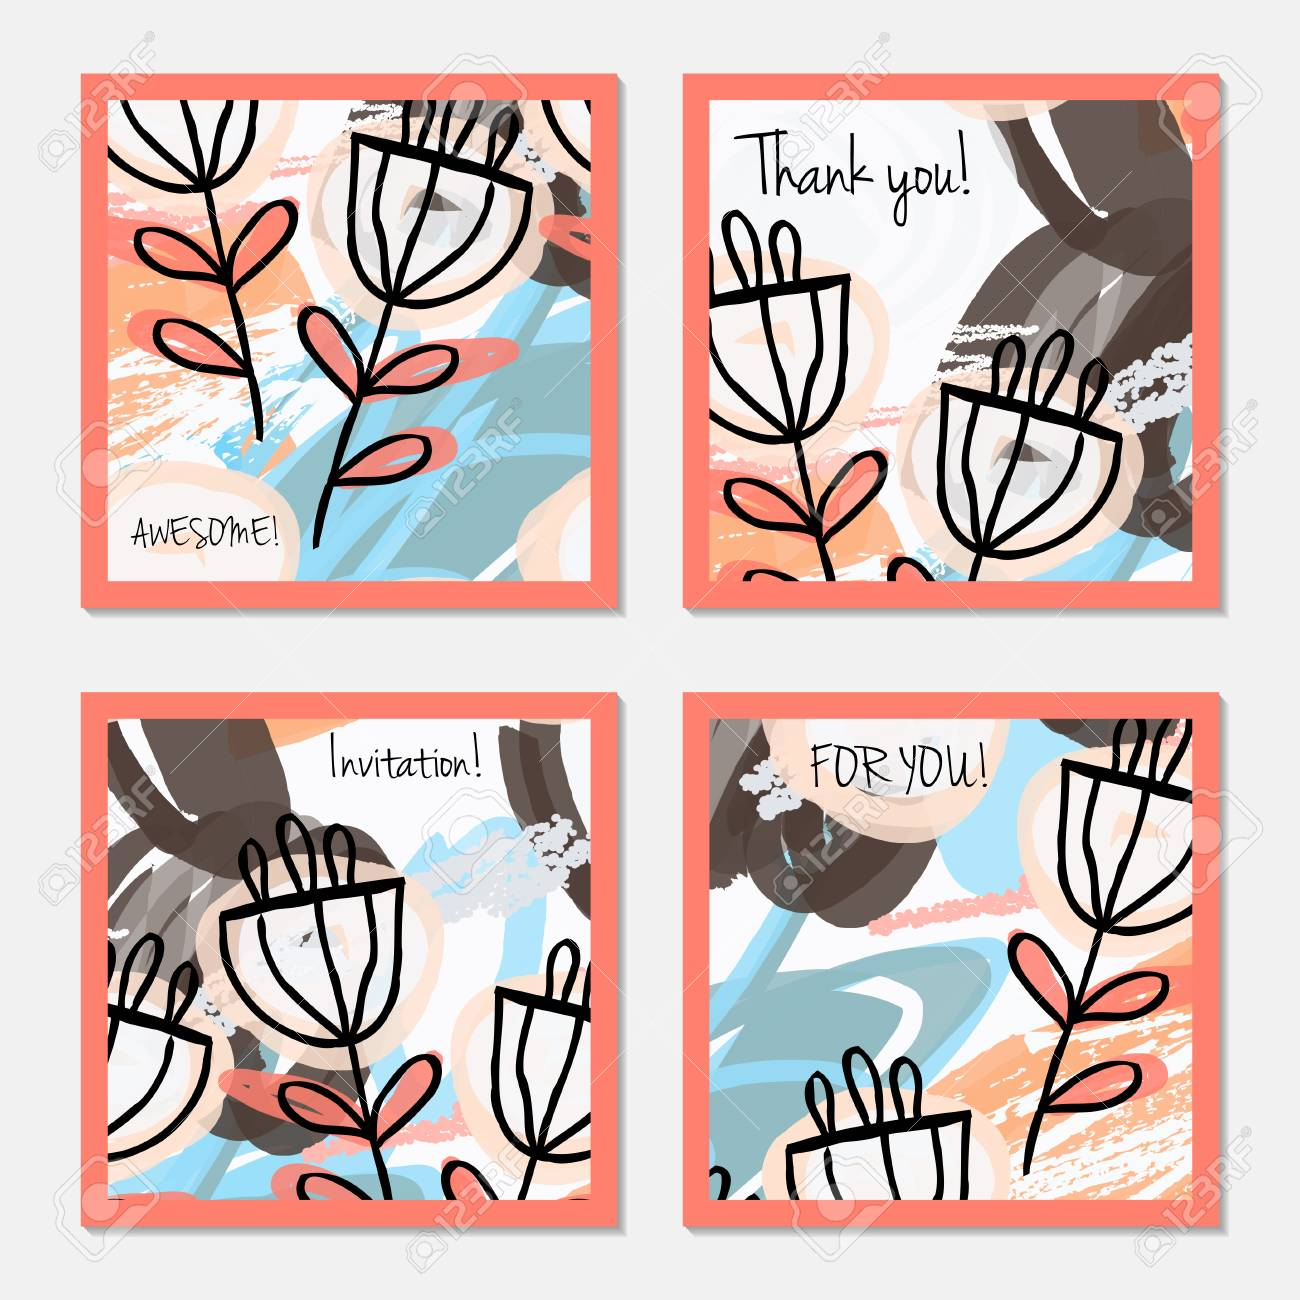 Hand Drawn Creative Invitation Greeting Cards Party Card Template Set Of 4 Isolated